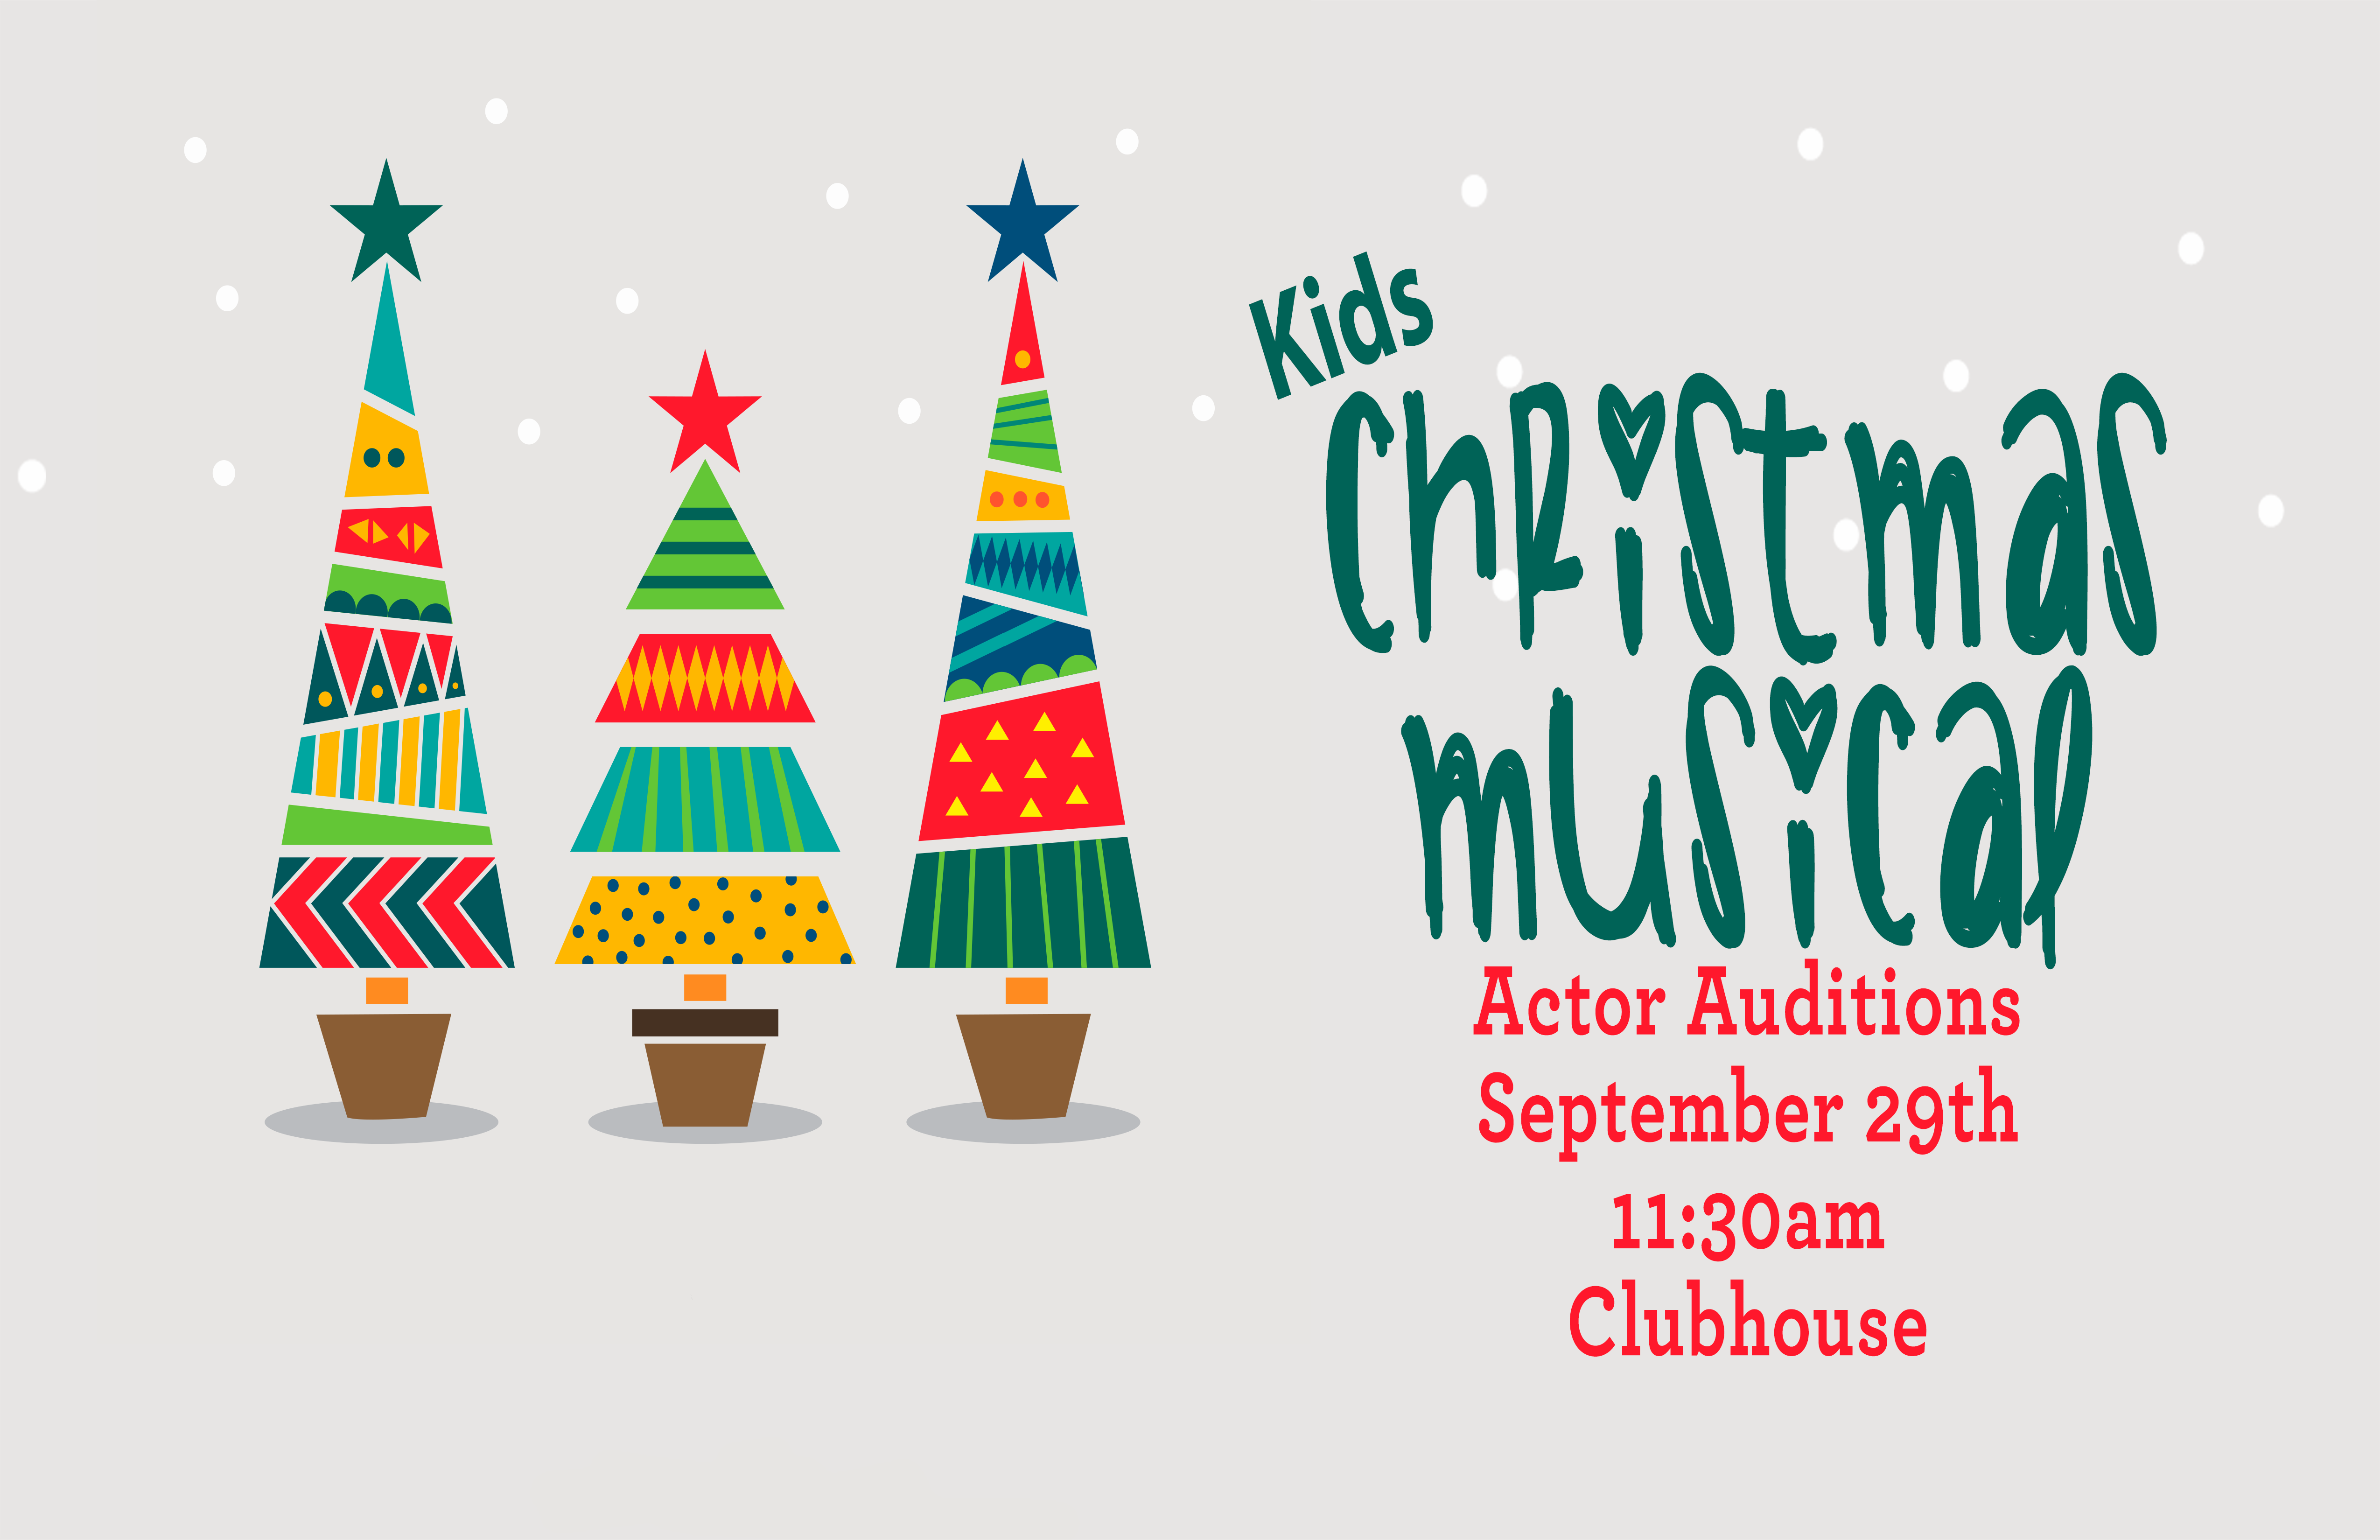 Actor Auditions Christmas Musical image